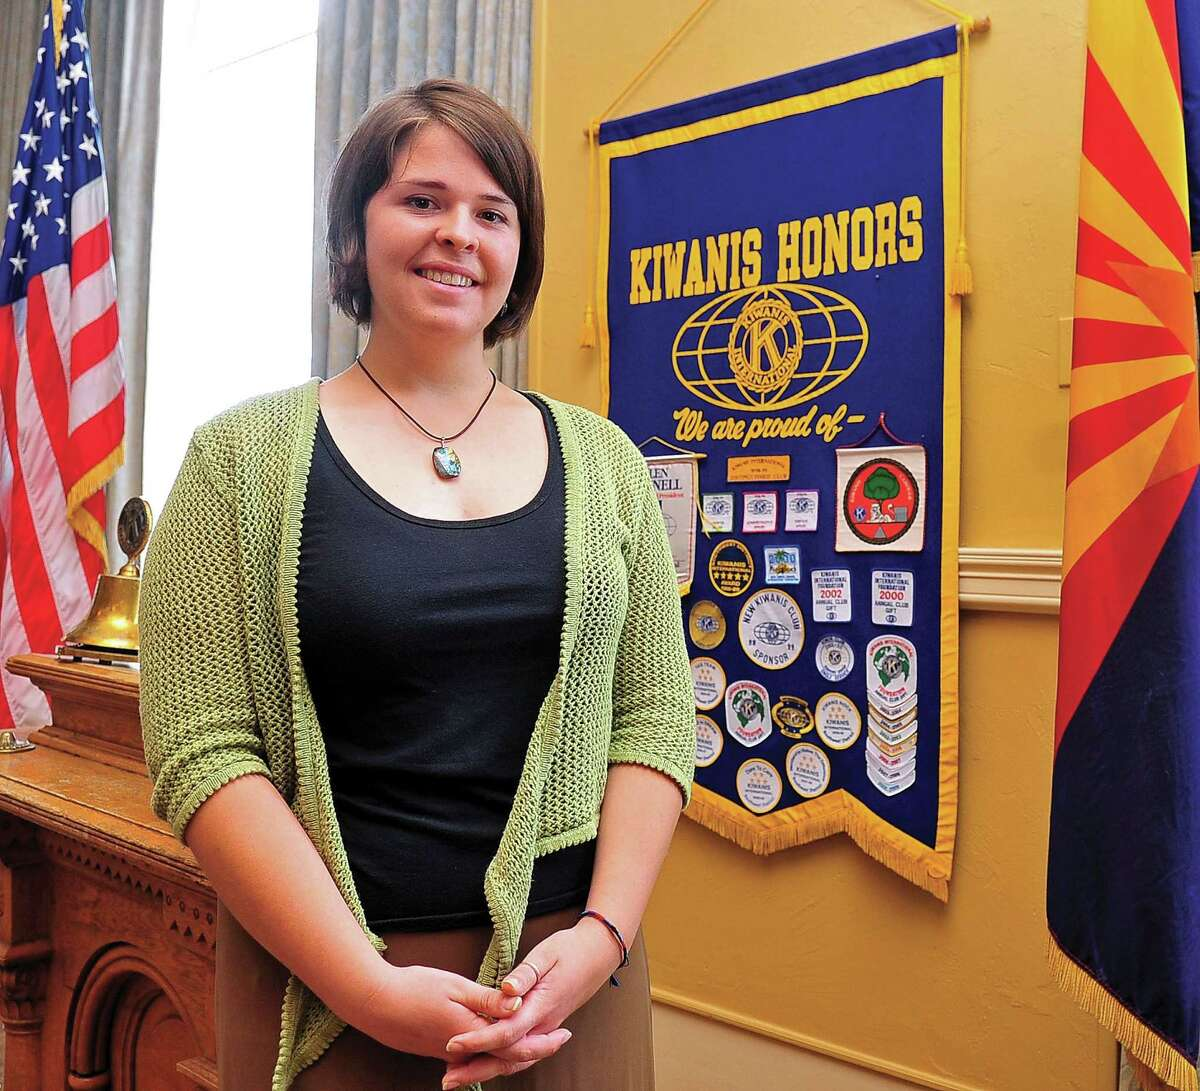 In this May 30, 2013, photo, Kayla Mueller is shown after speaking to a group in Prescott, Ariz. A statement that appeared on a militant website commonly used by the Islamic State group claimed that Mueller was killed in a Jordanian airstrike on Friday, Feb. 6, 2015, on the outskirts of the northern Syrian city of Raqqa, the militant group's main stronghold. The IS statement could not be independently verified. (AP Photo/The Daily Courier, Matt Hinshaw) MANDATORY CREDIT